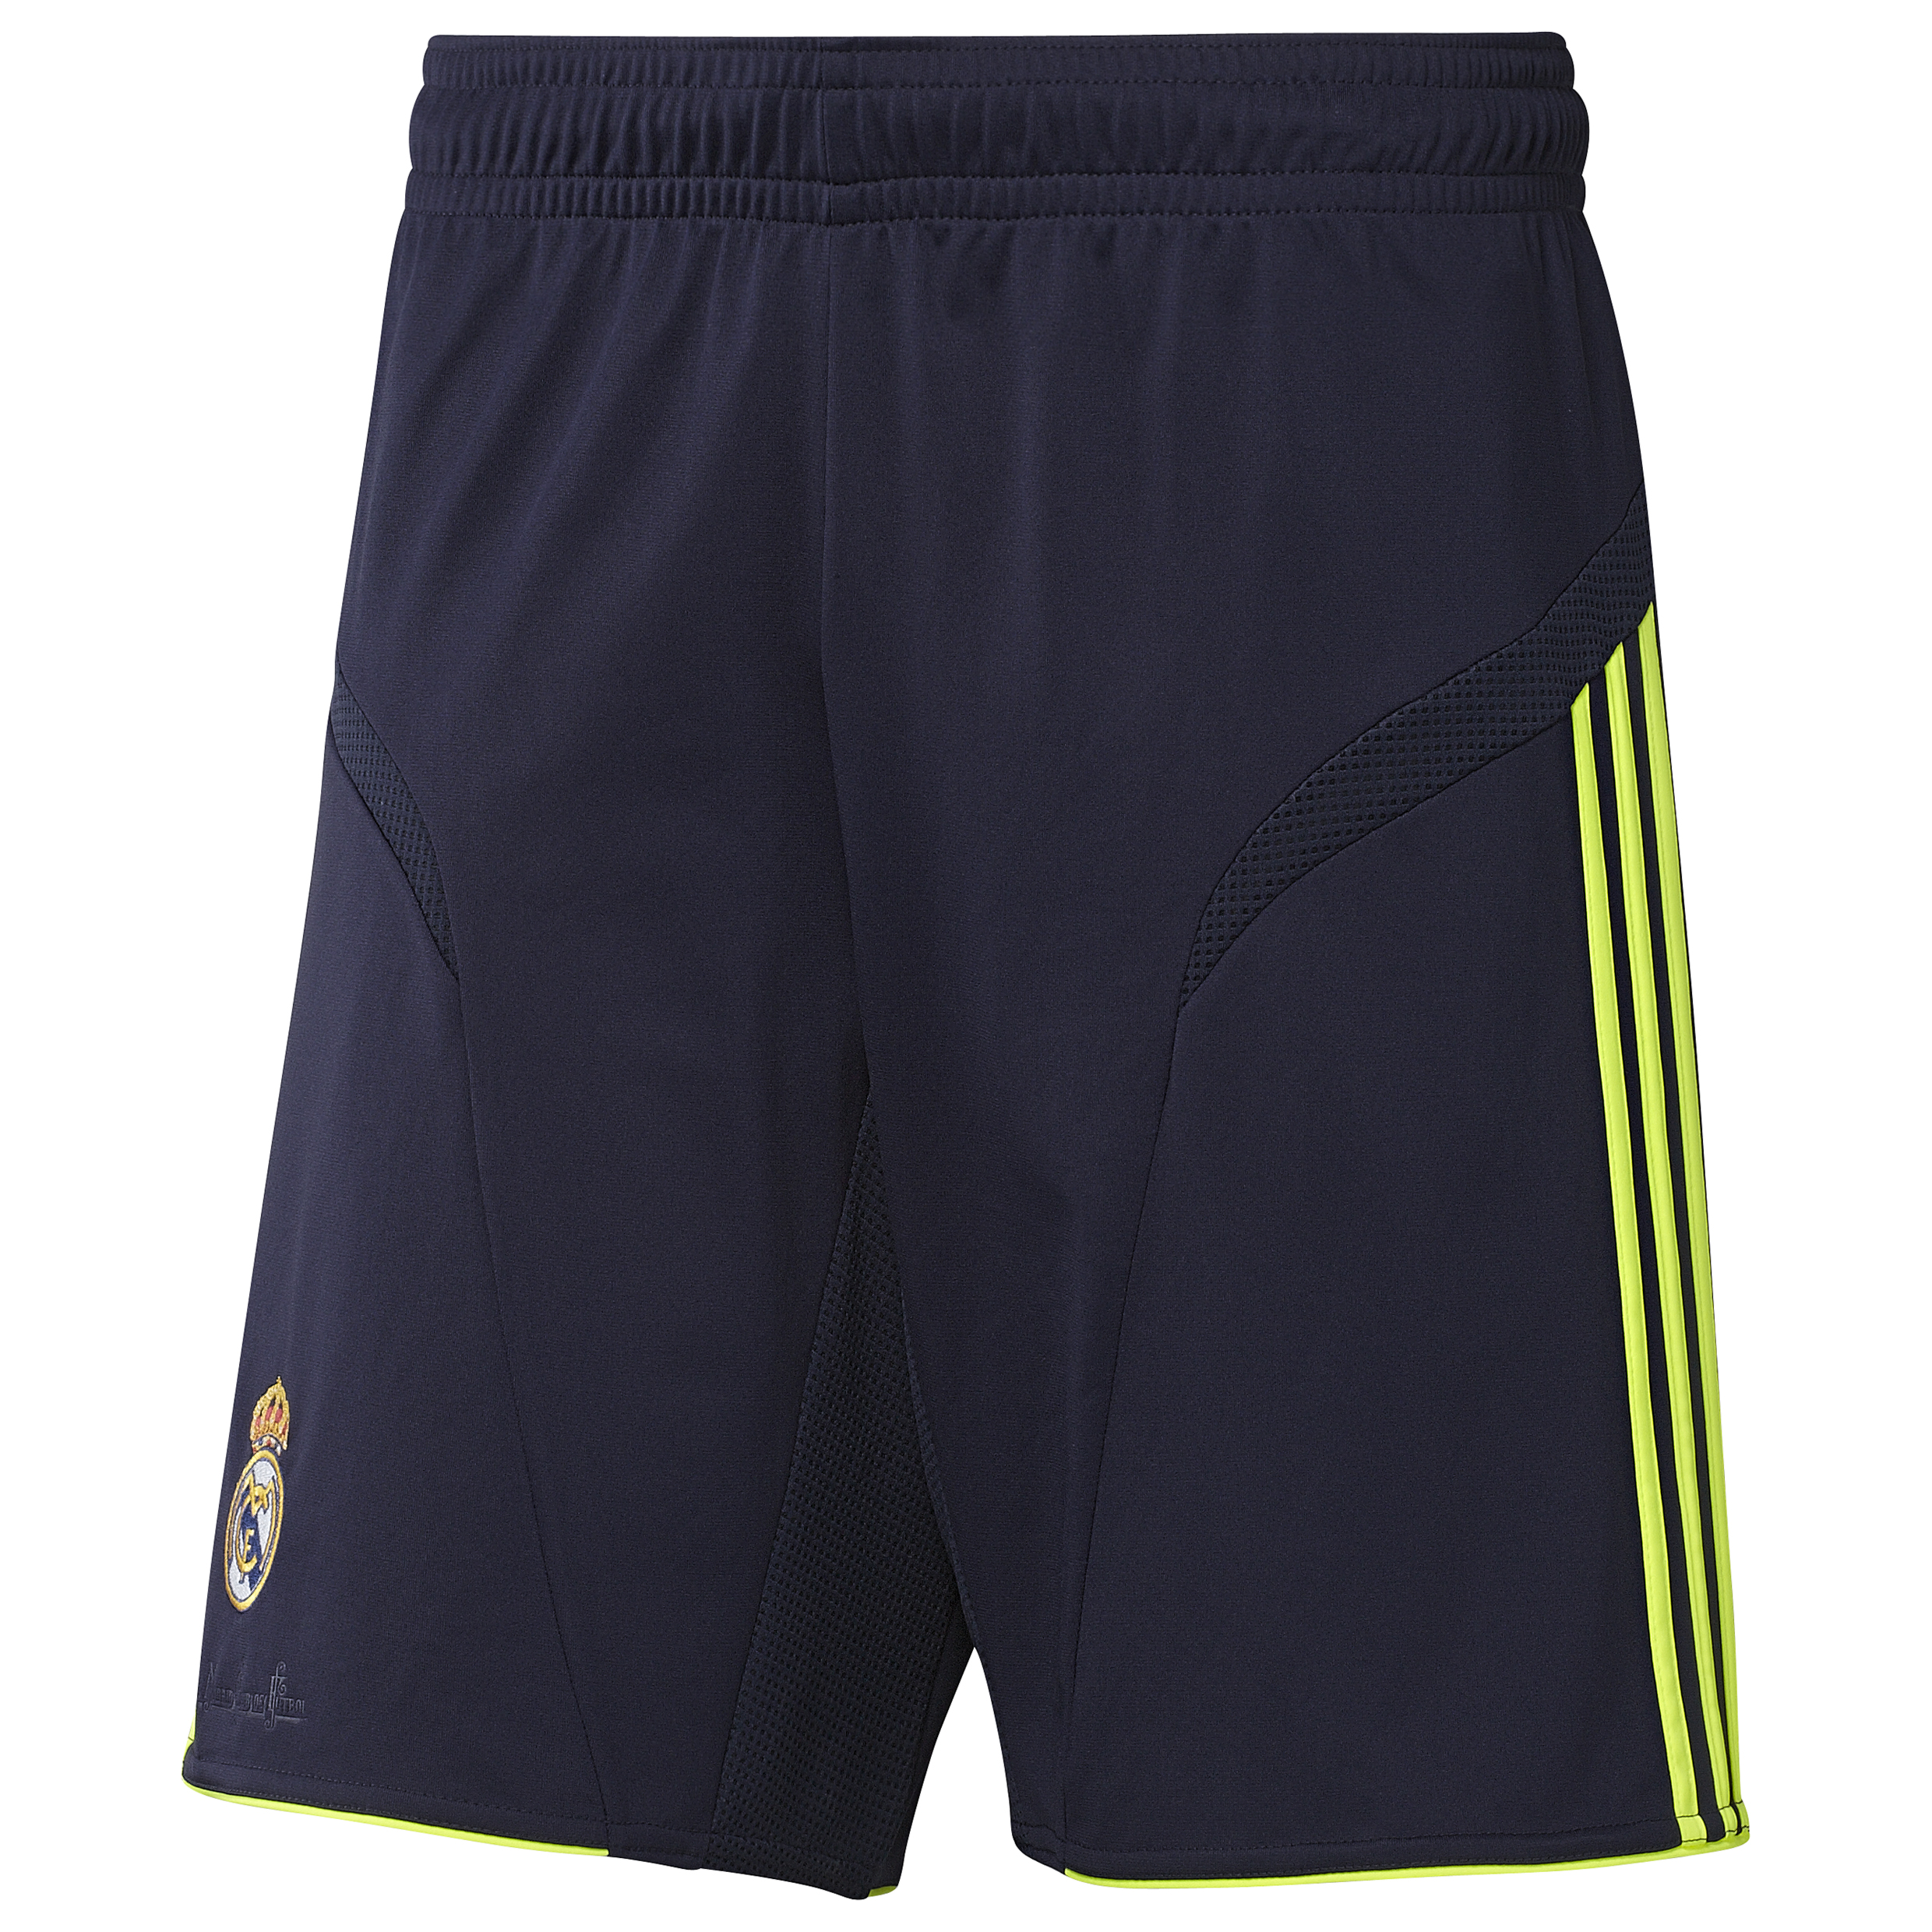 Pantaln corto visitante Real Madrid 2012/13 - Joven